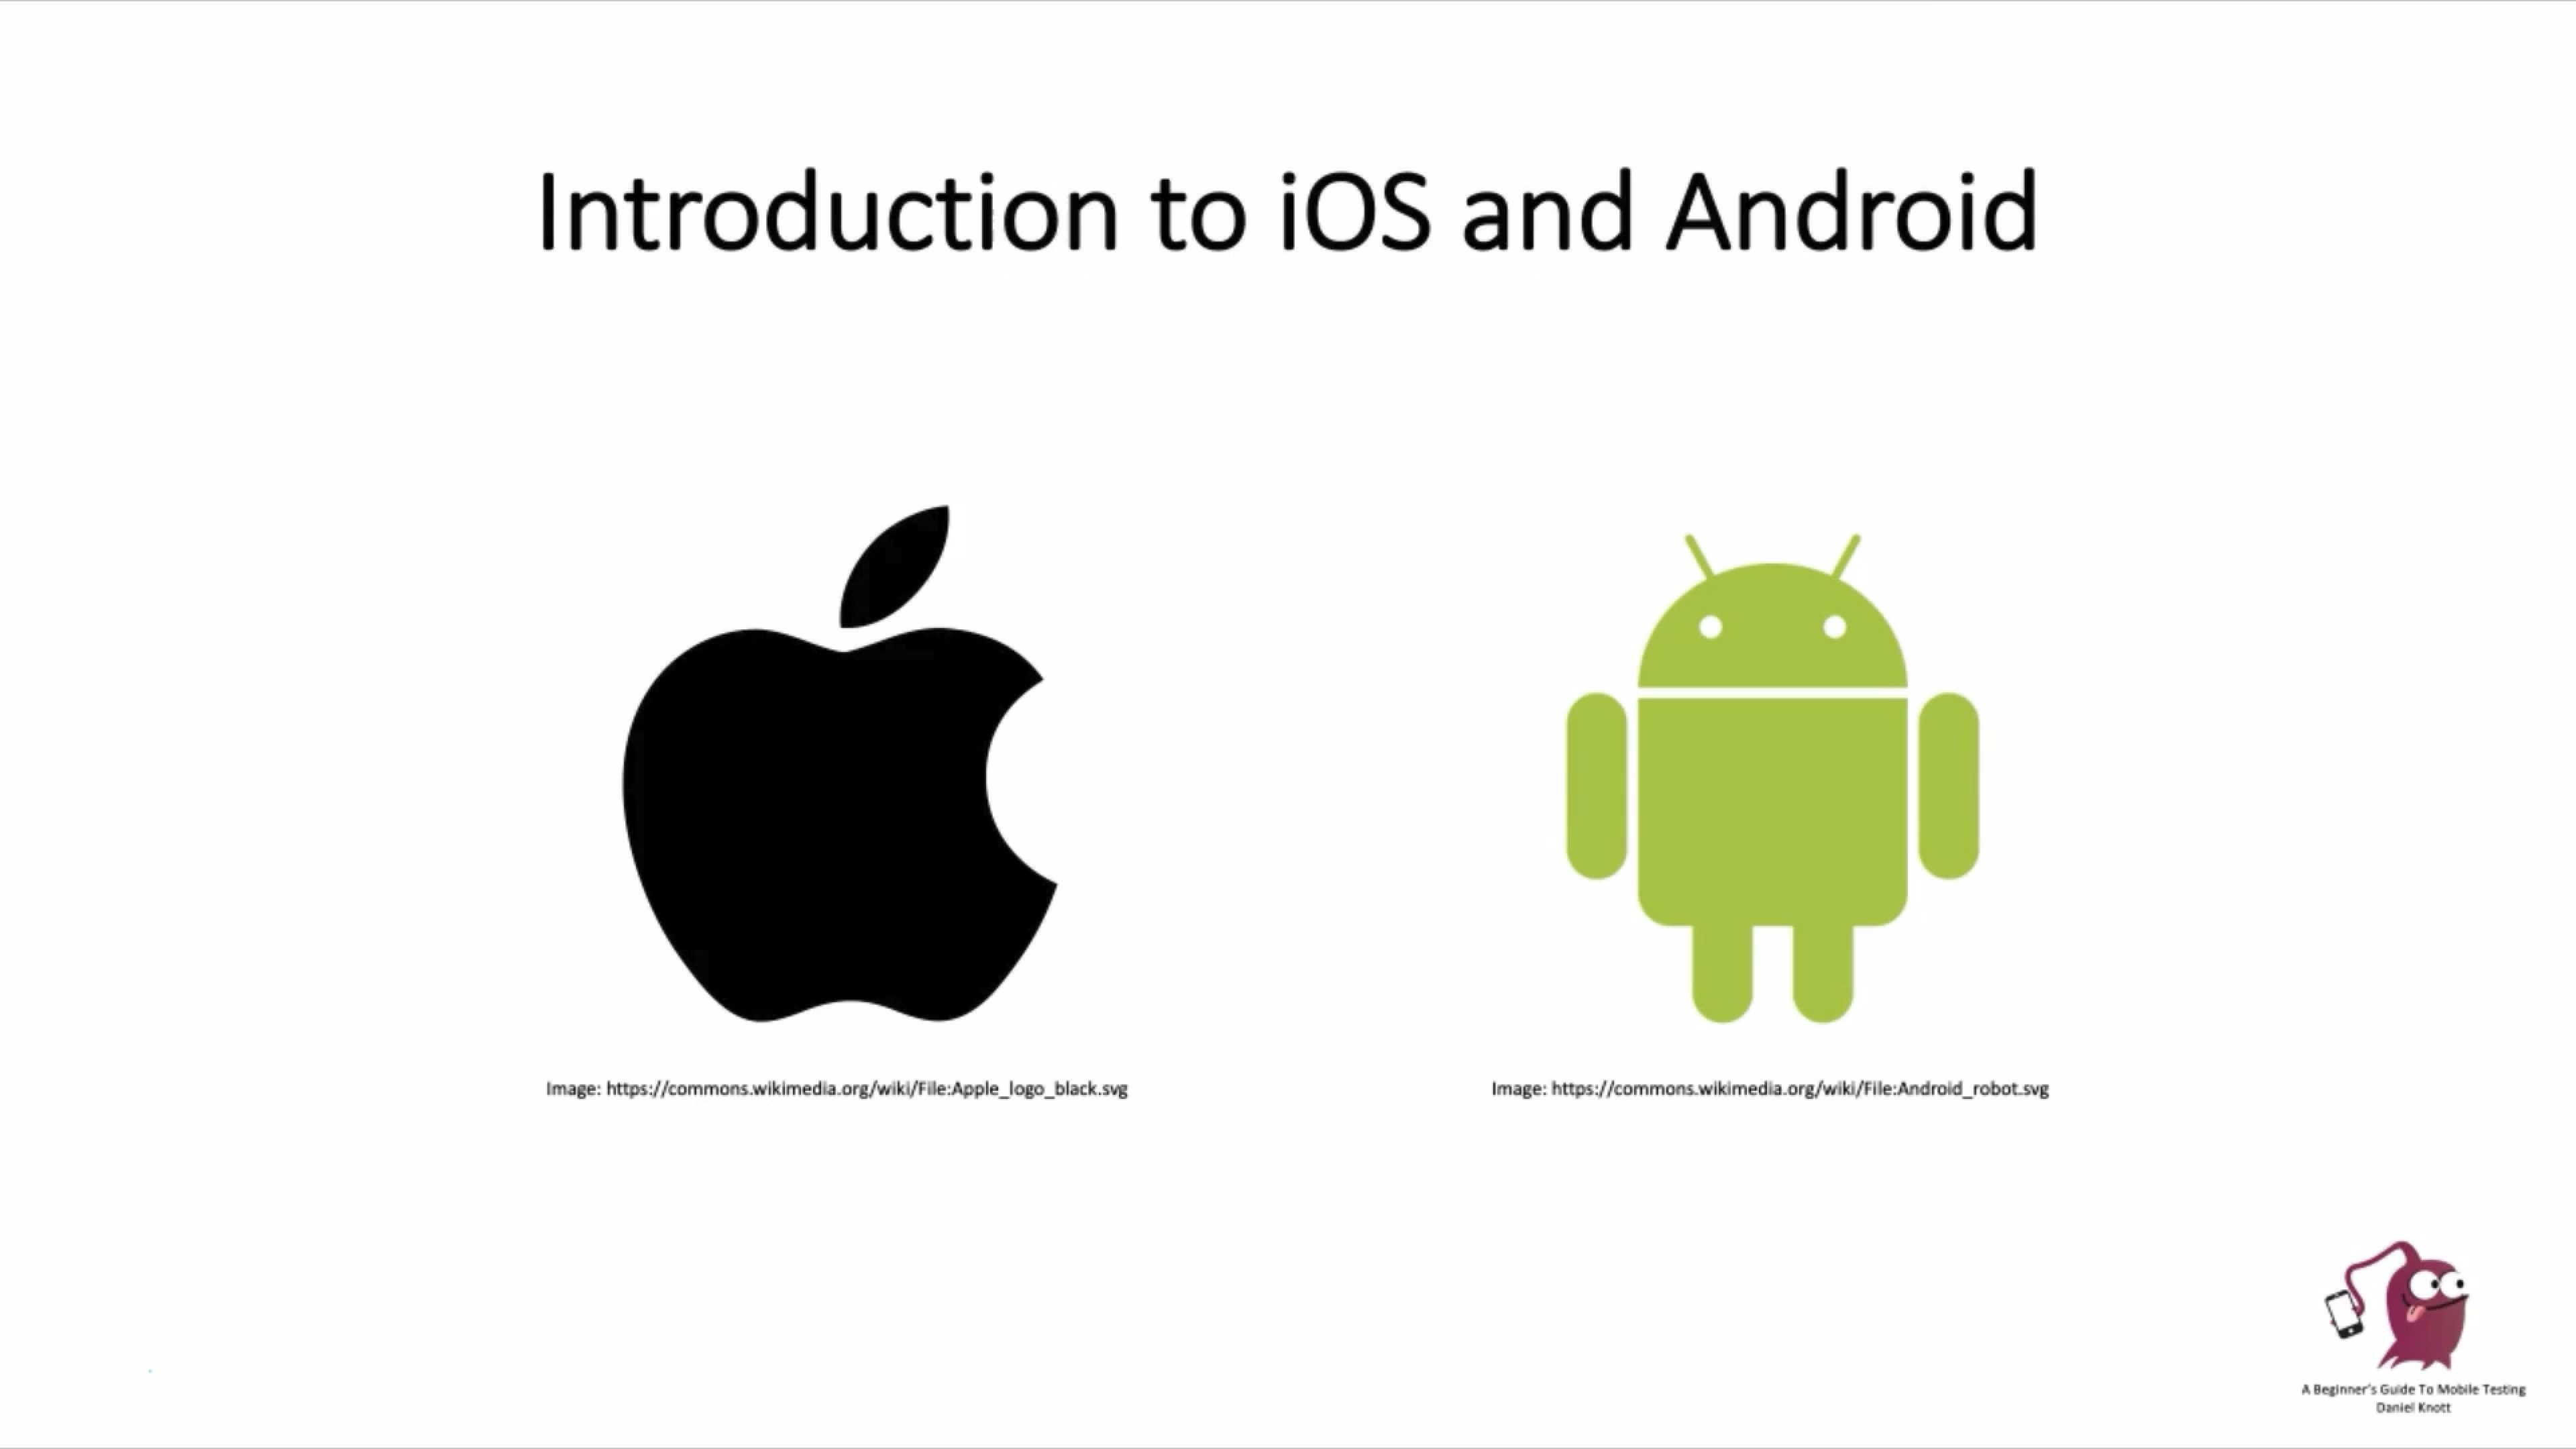 Introduction to iOS and Android